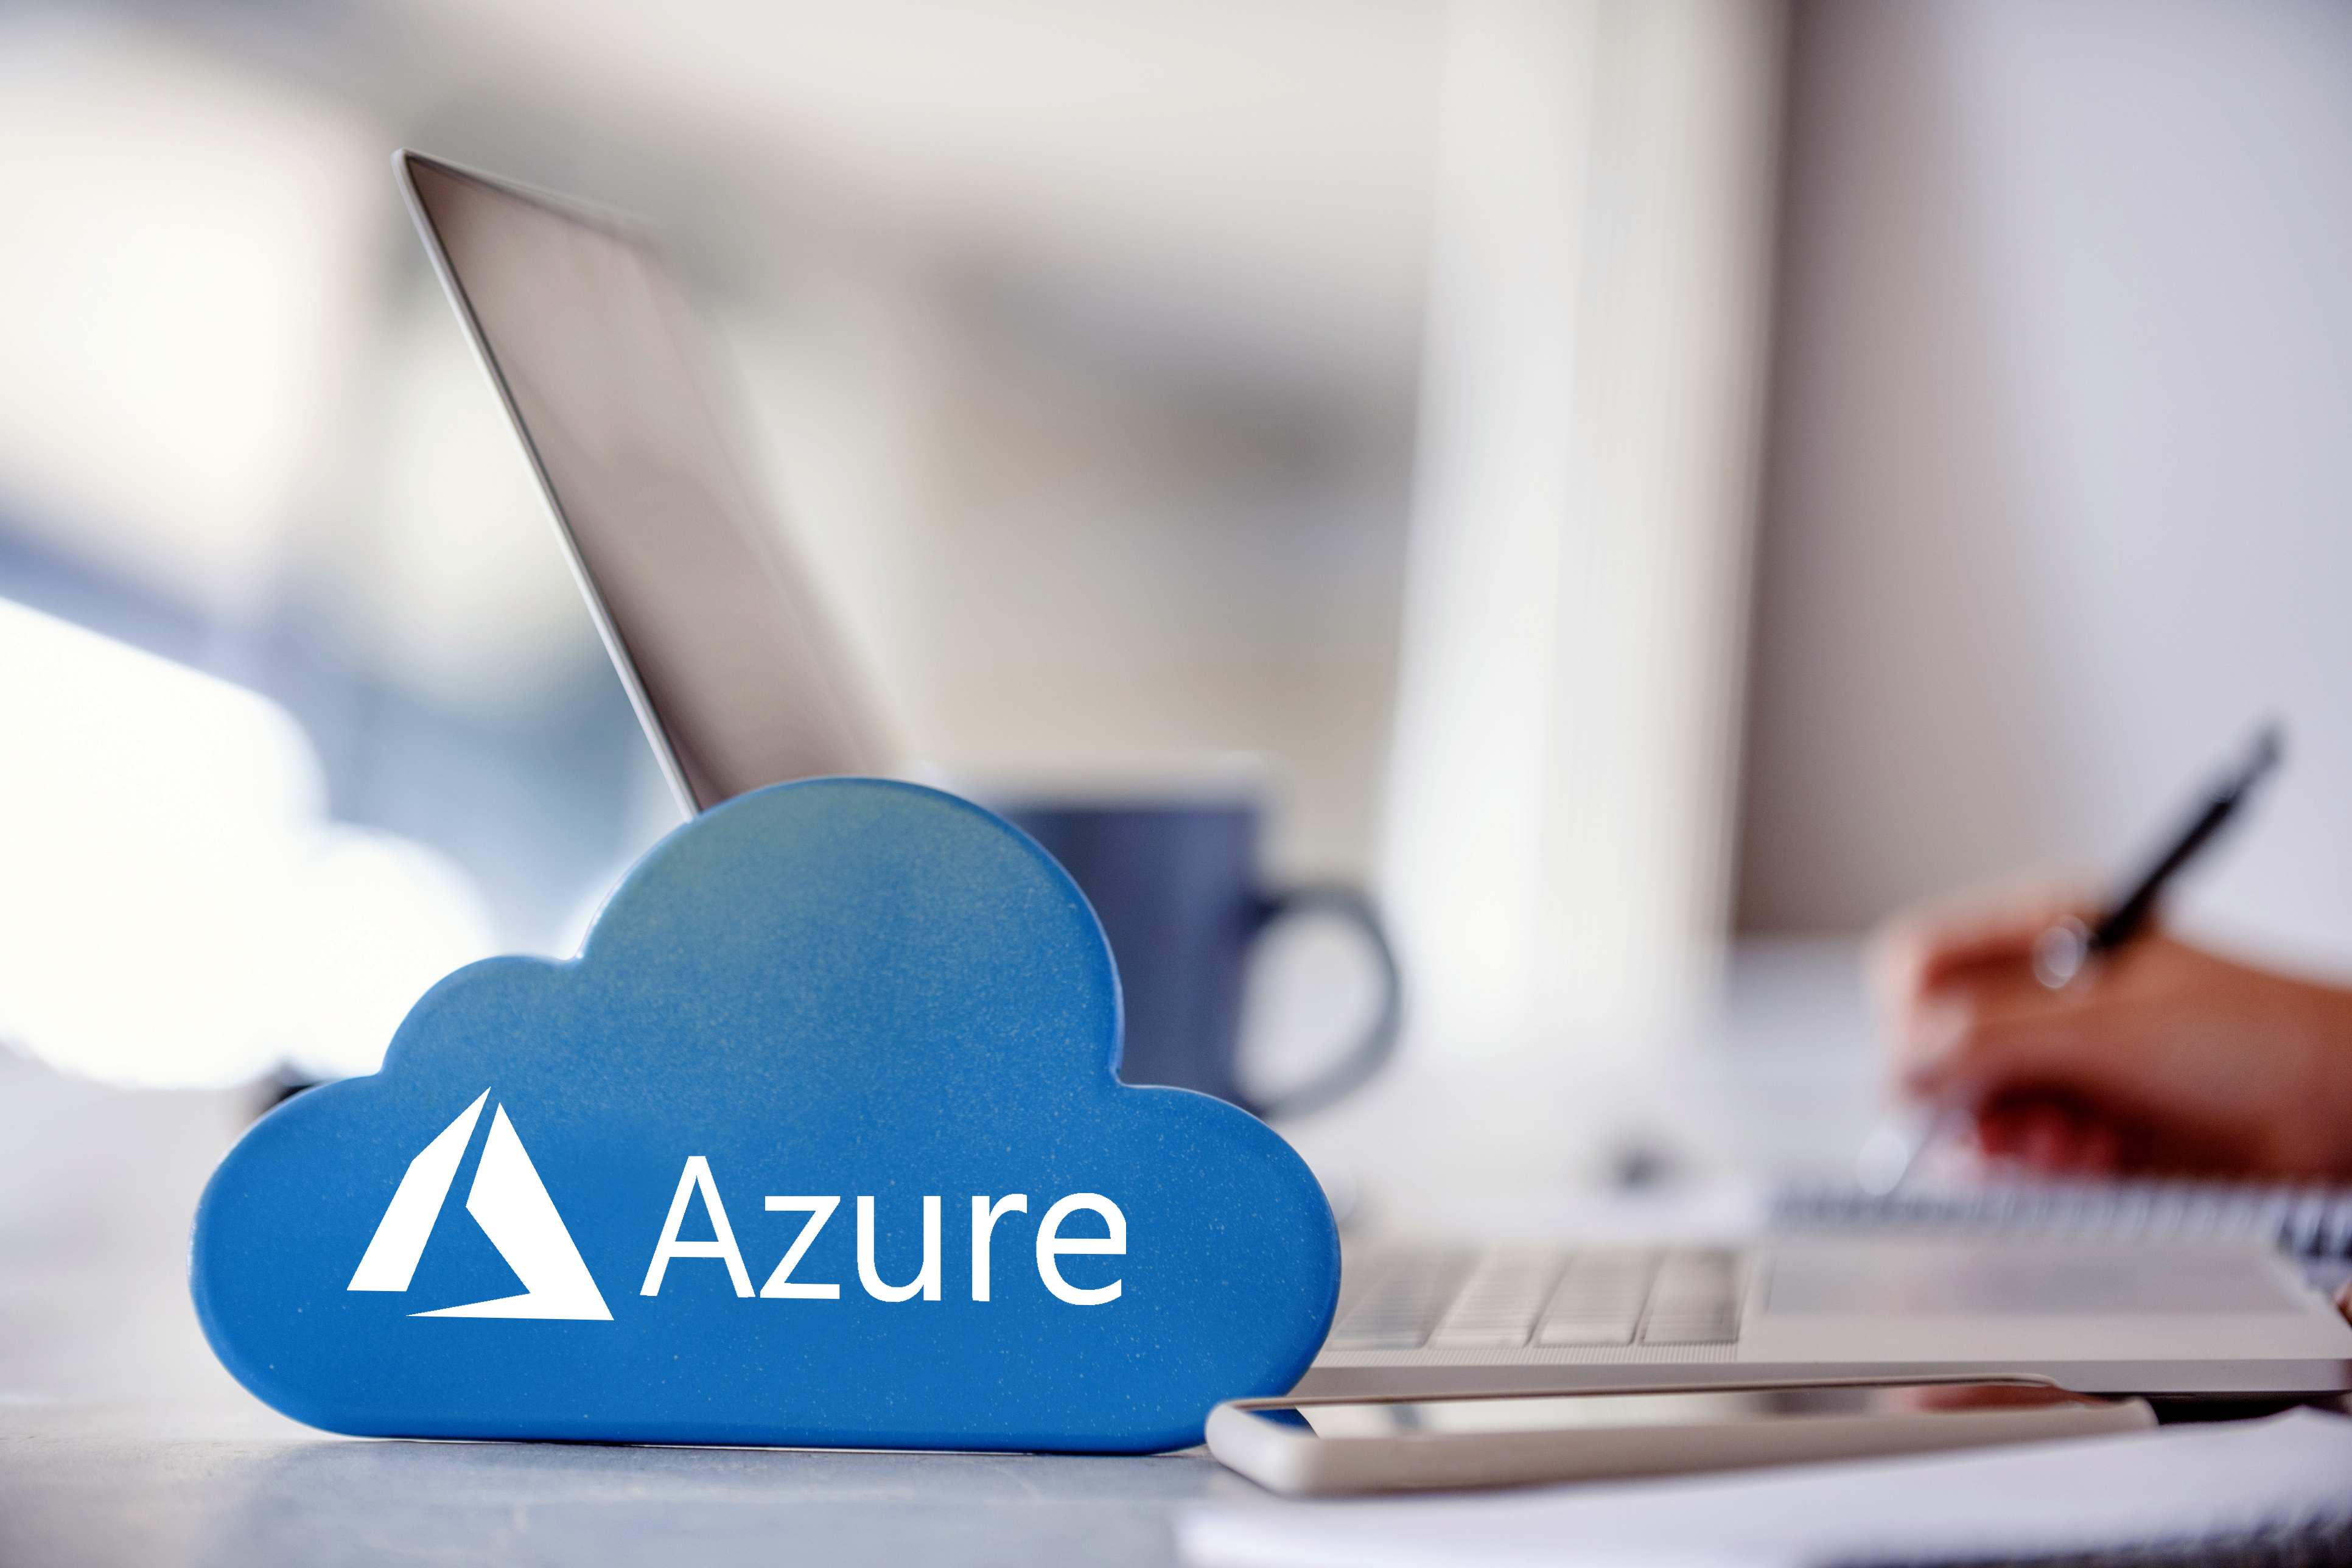 Does Microsoft Azure Come With AI?